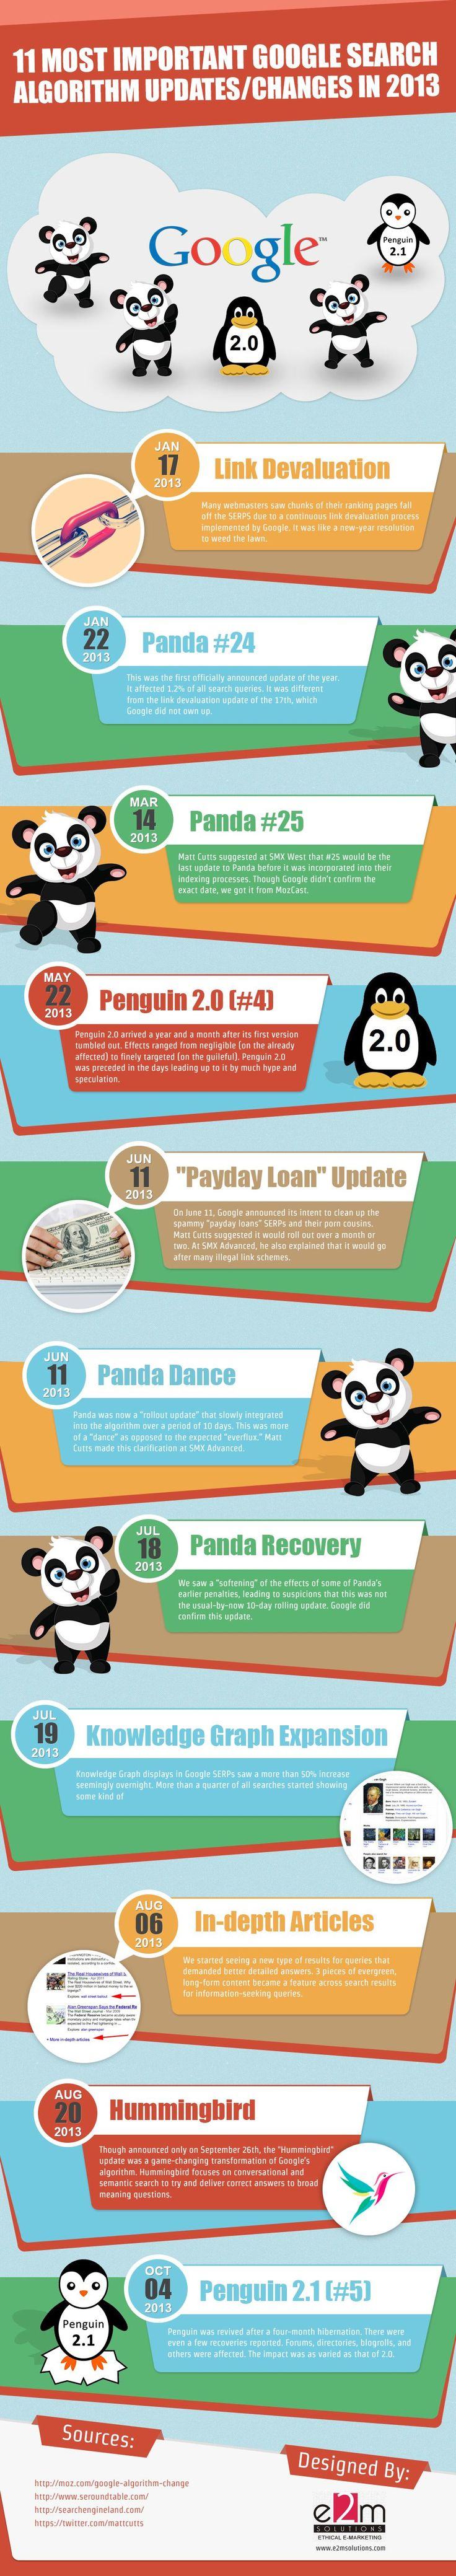 Infographic: The Biggest Changes To Google Search In 2013 #SEO